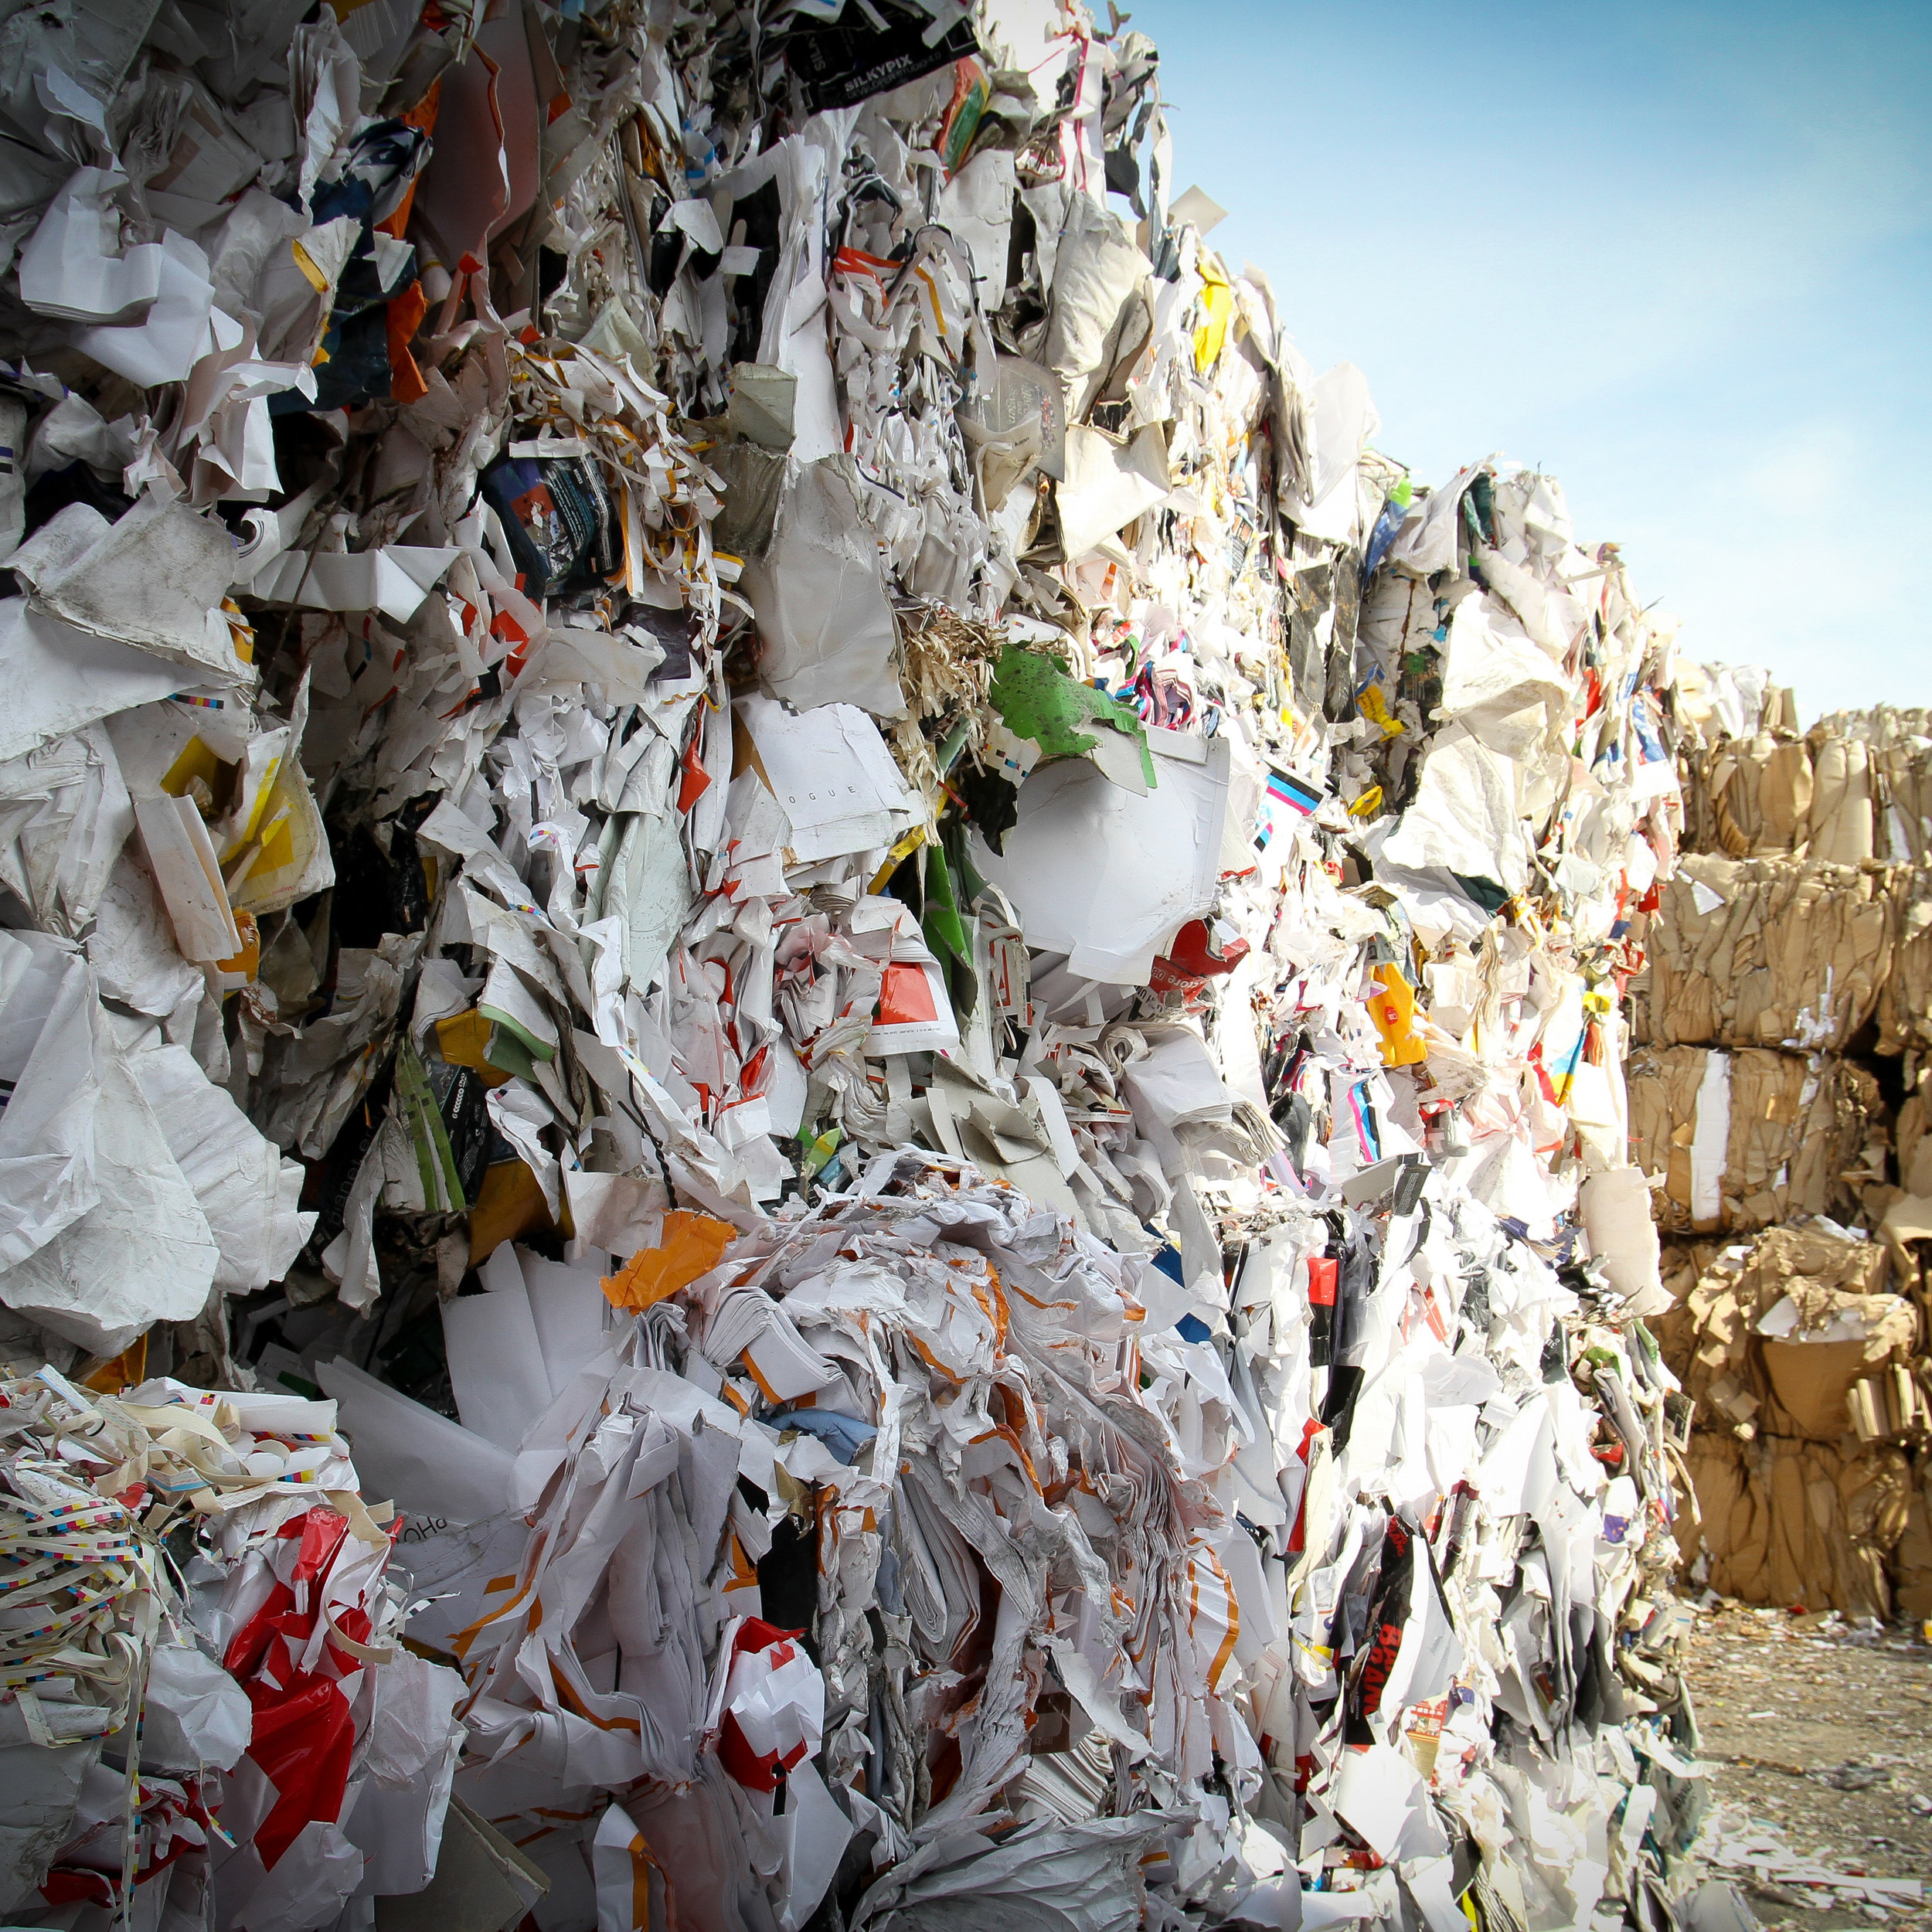 Americans each throw away an average of 70 pounds of clothing & textiles annually. -